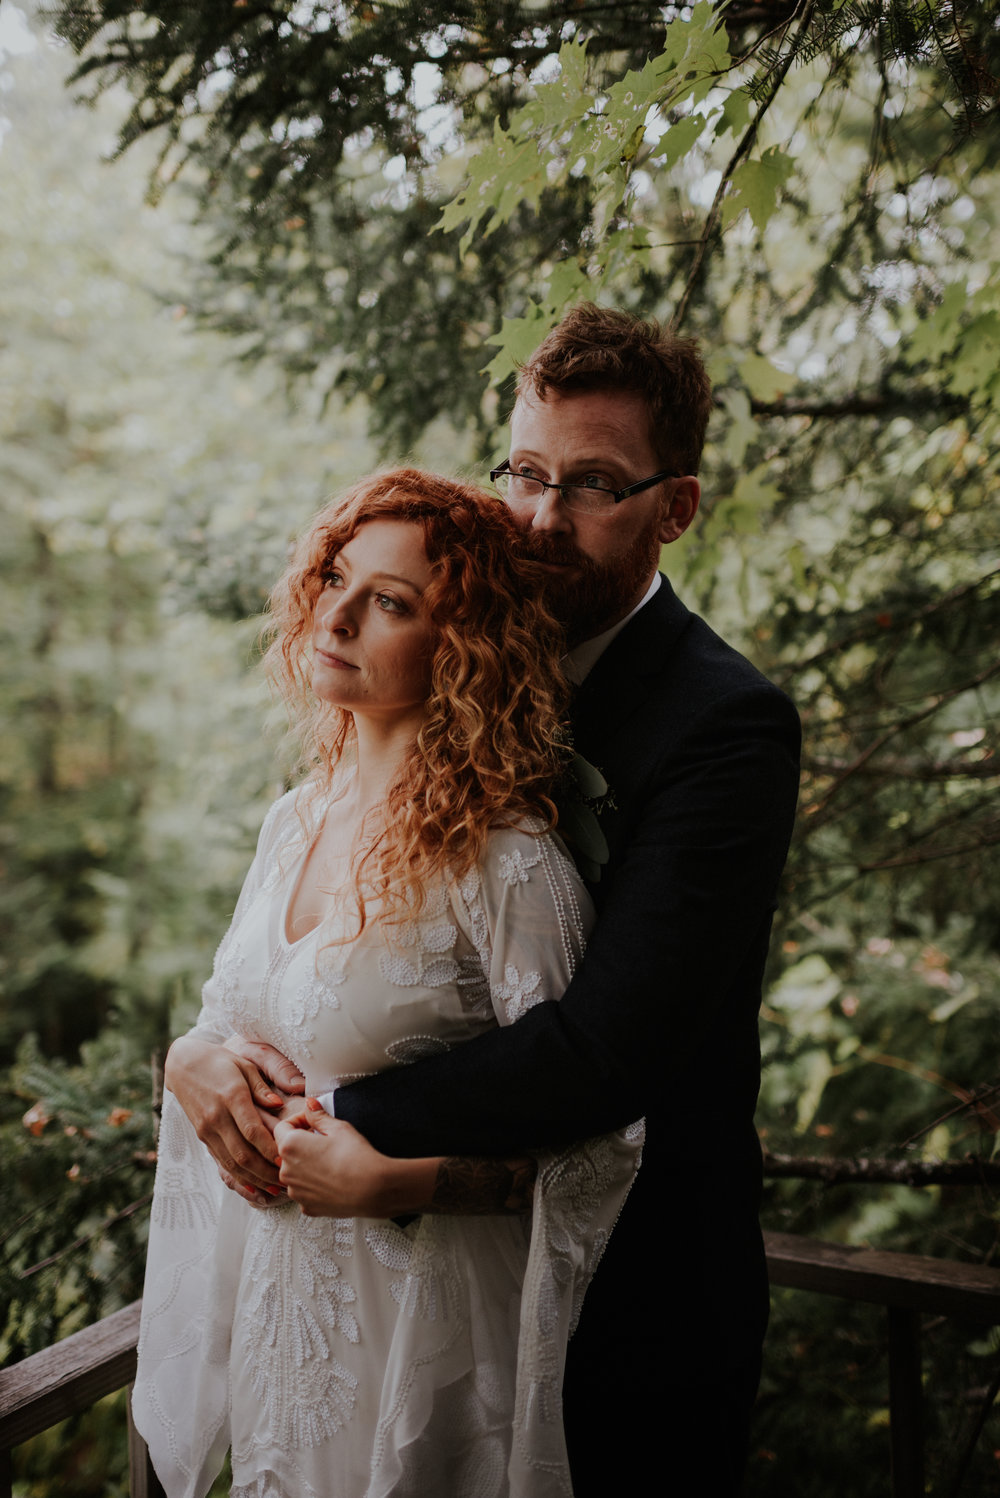 wildsoulsstudio-woodland-intimate-newengland-wedding-lake willoughby-p-107.jpg